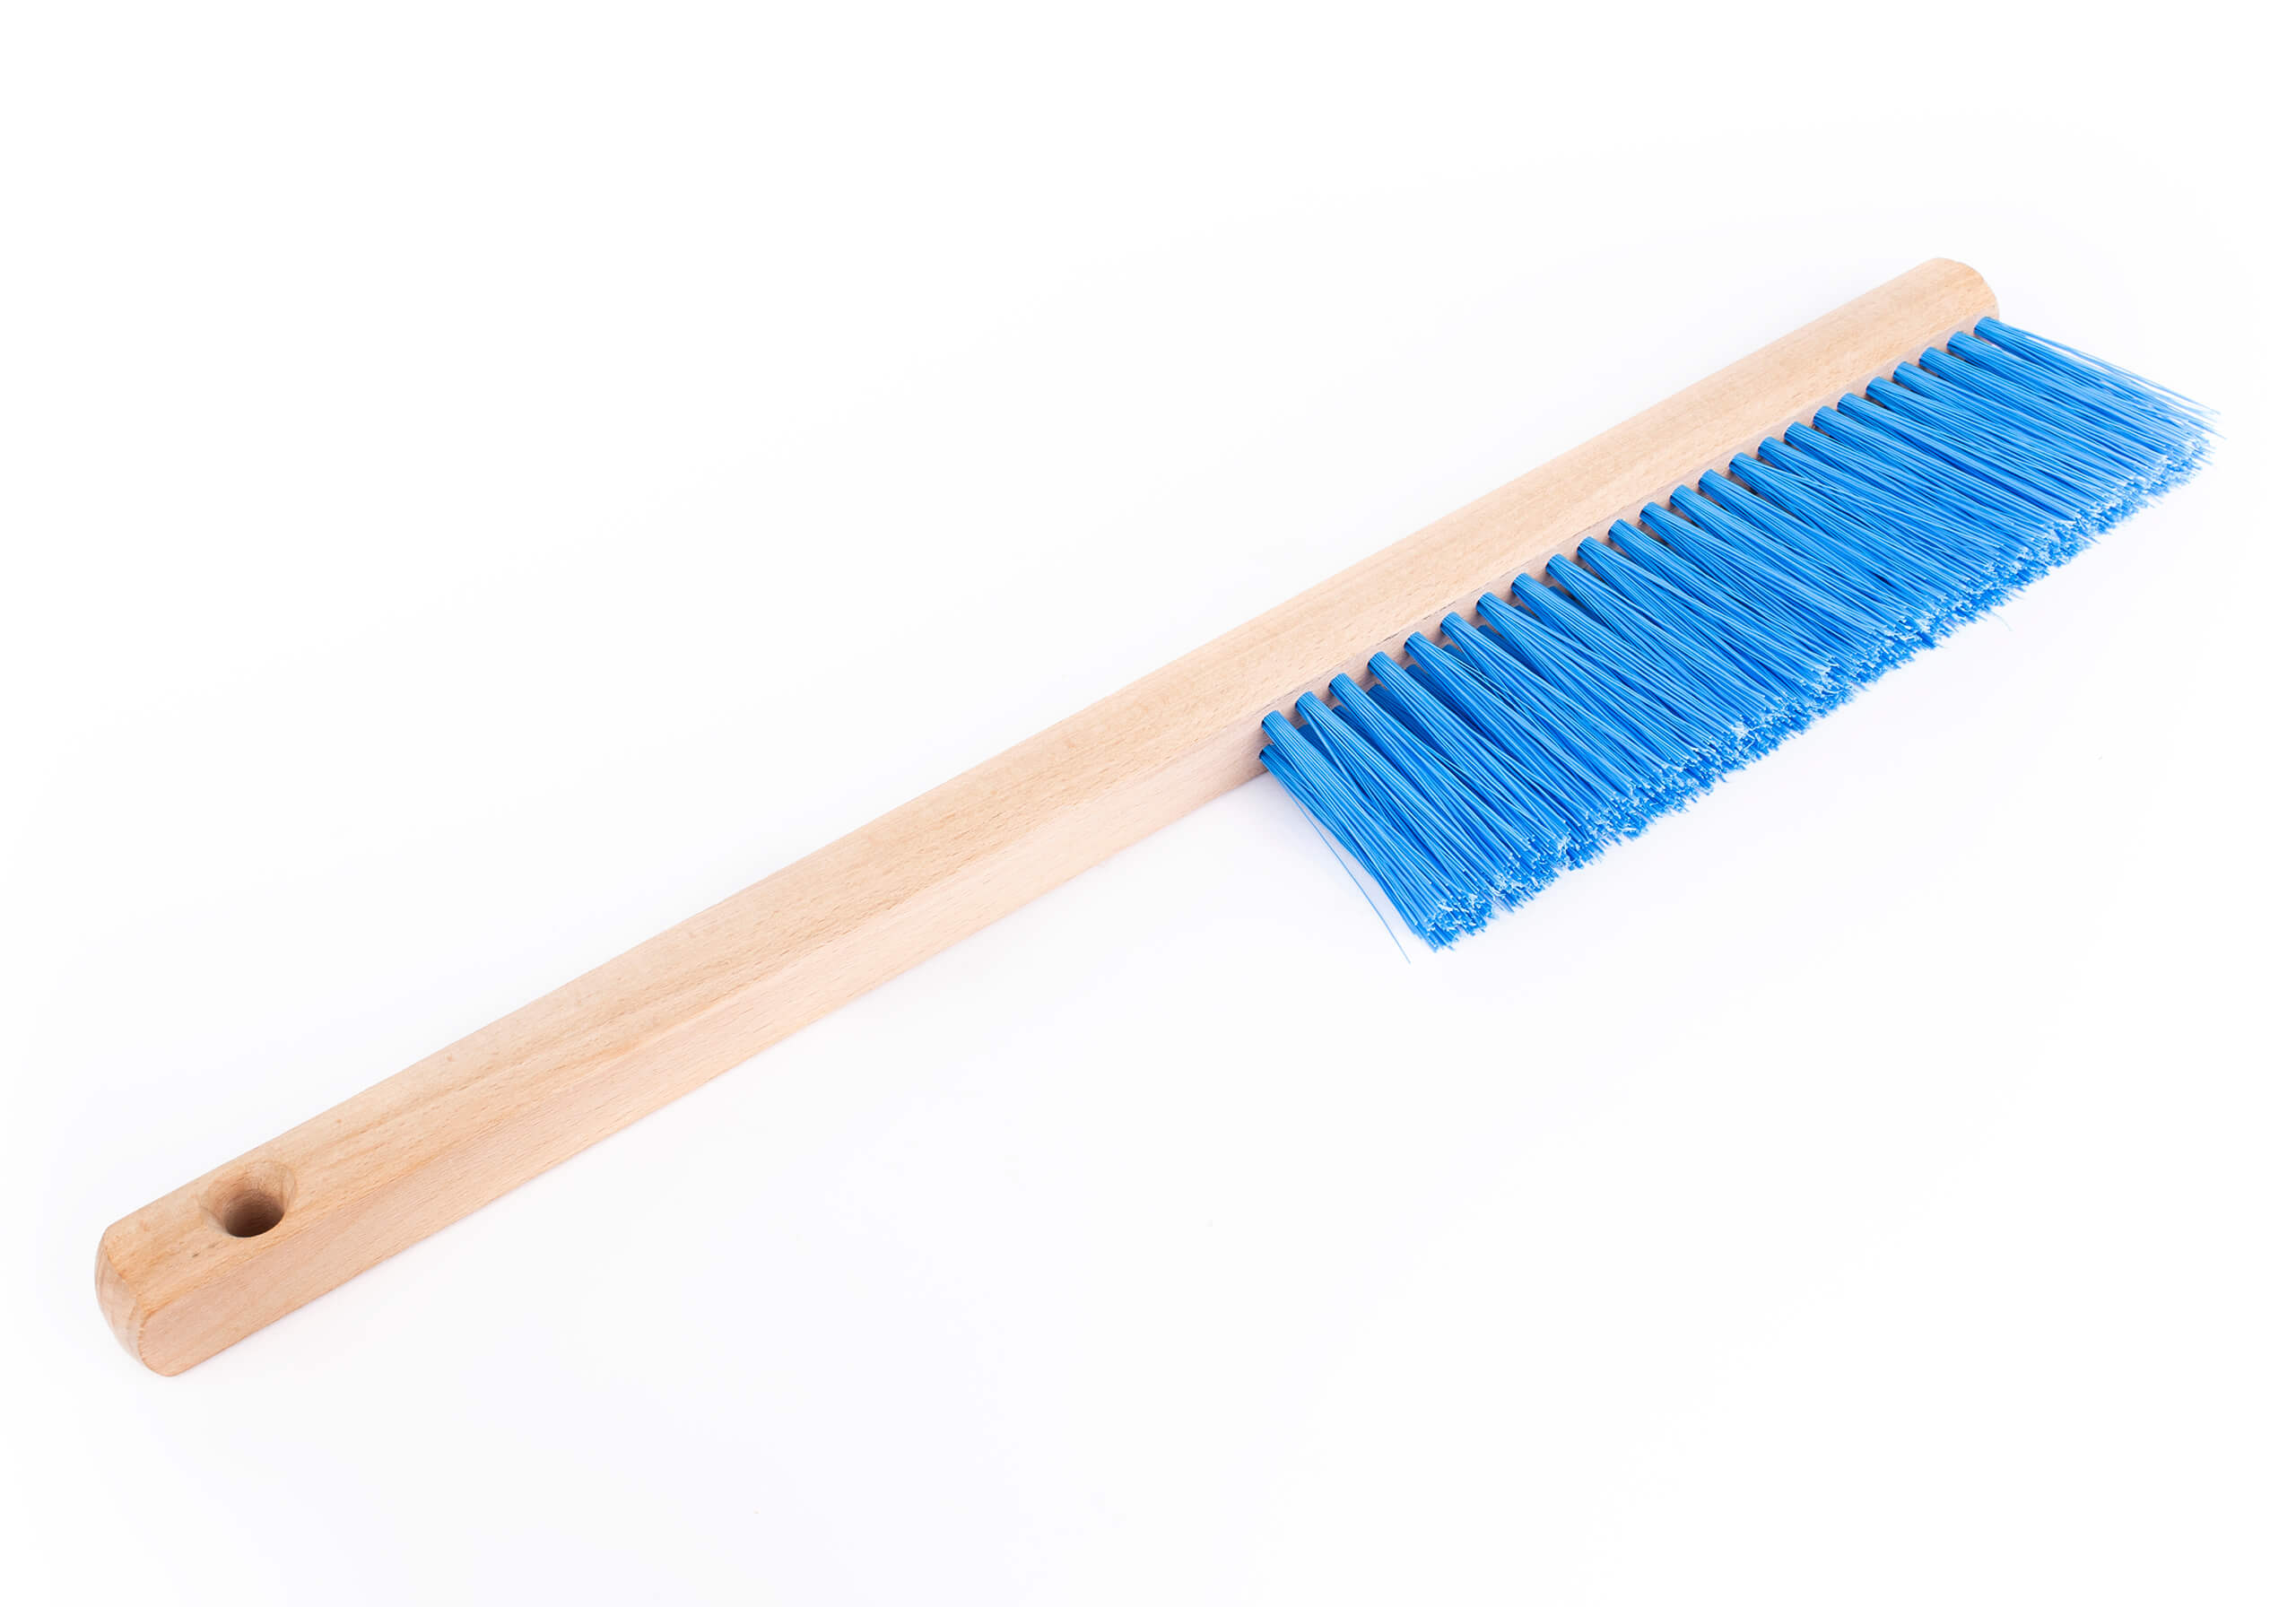 :BILLAT 45cm snow brush no. 23110